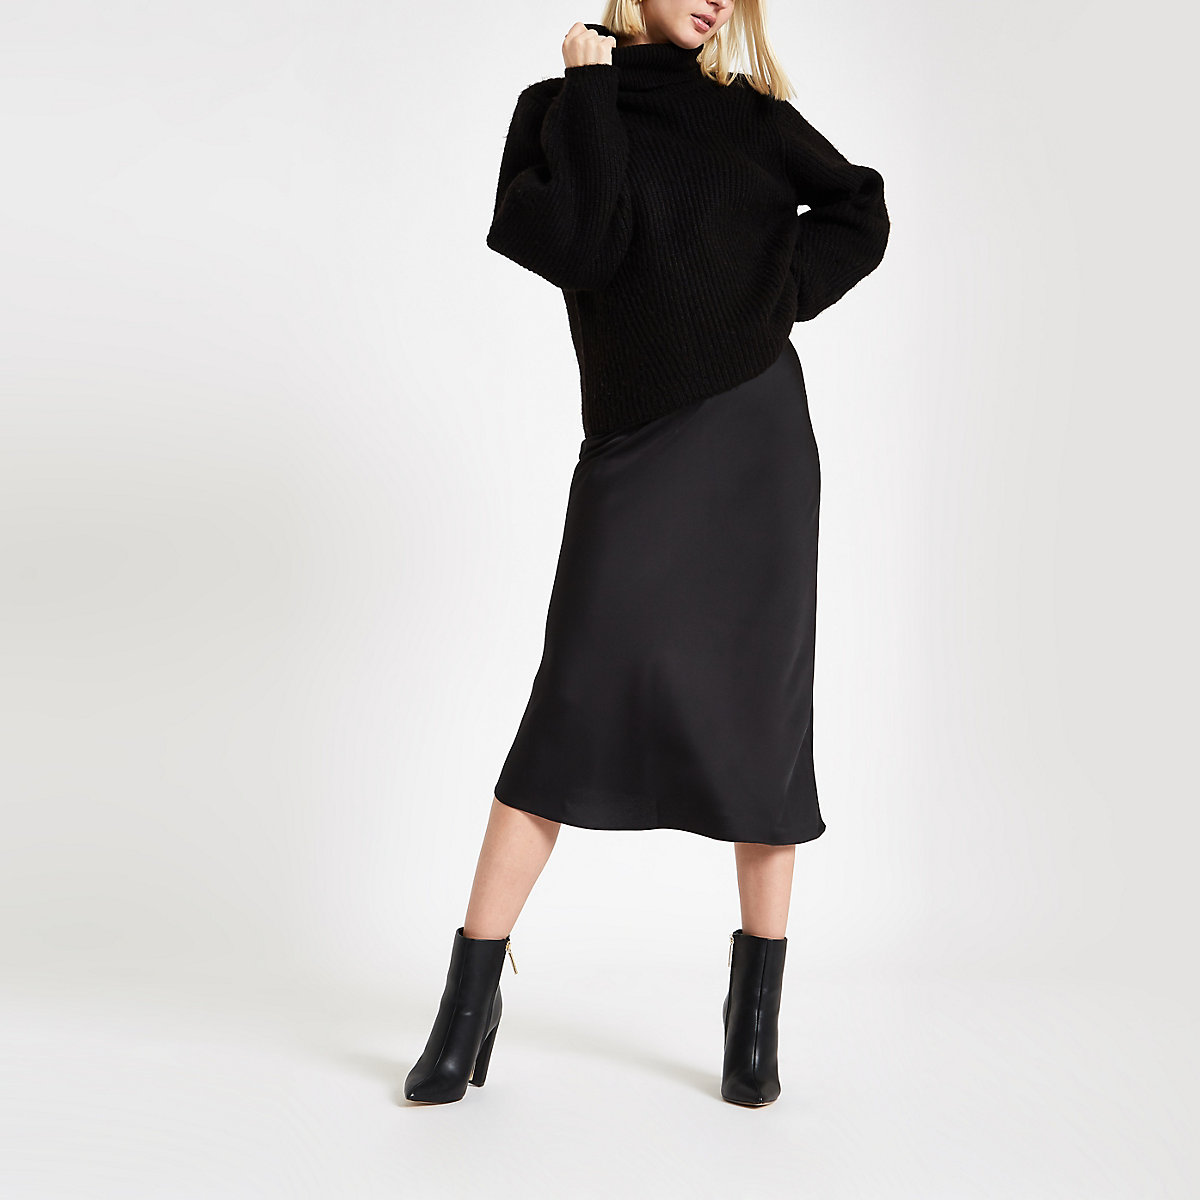 Black bias satin midi skirt